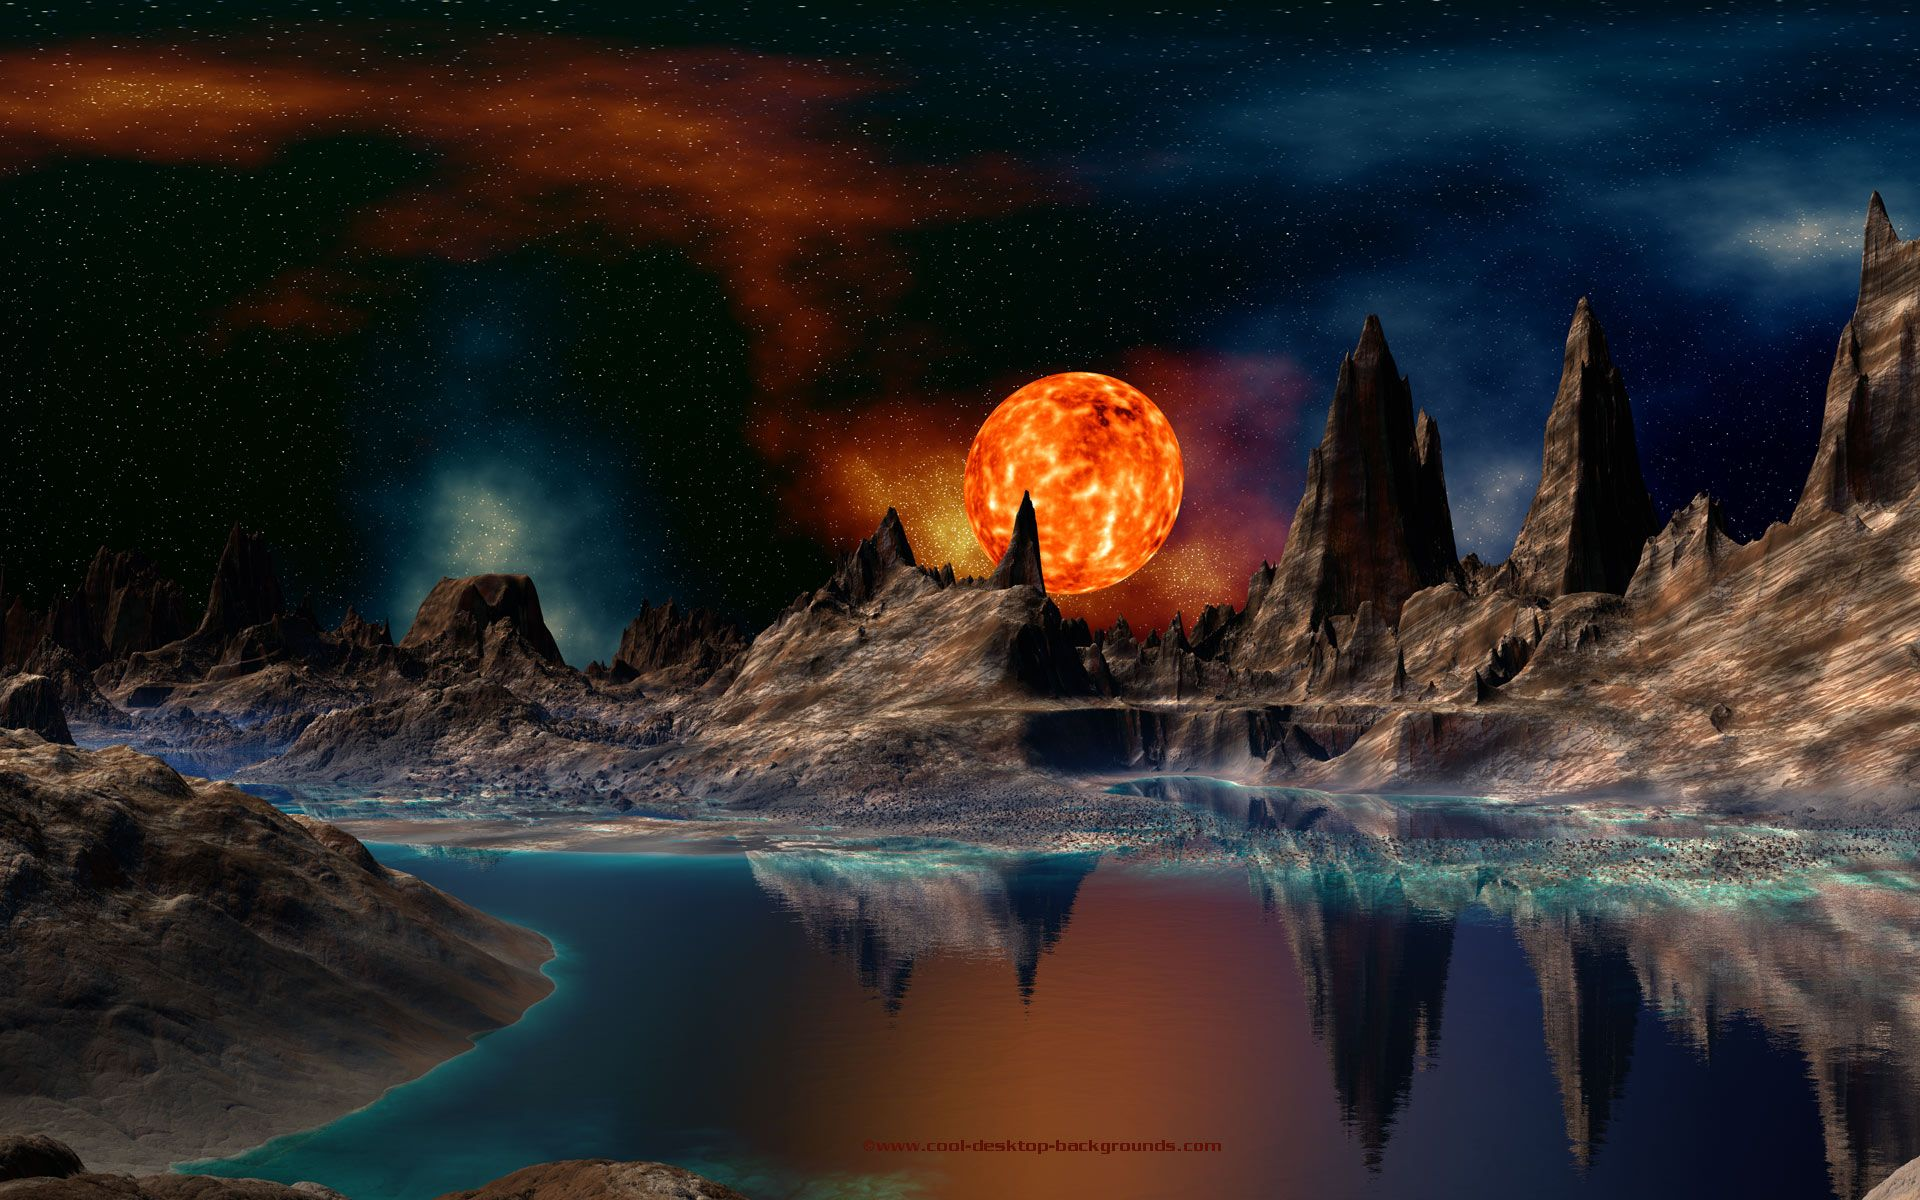 Epic Desktop Wallpapers And Backgrounds Desktop Background Space Science Fiction See